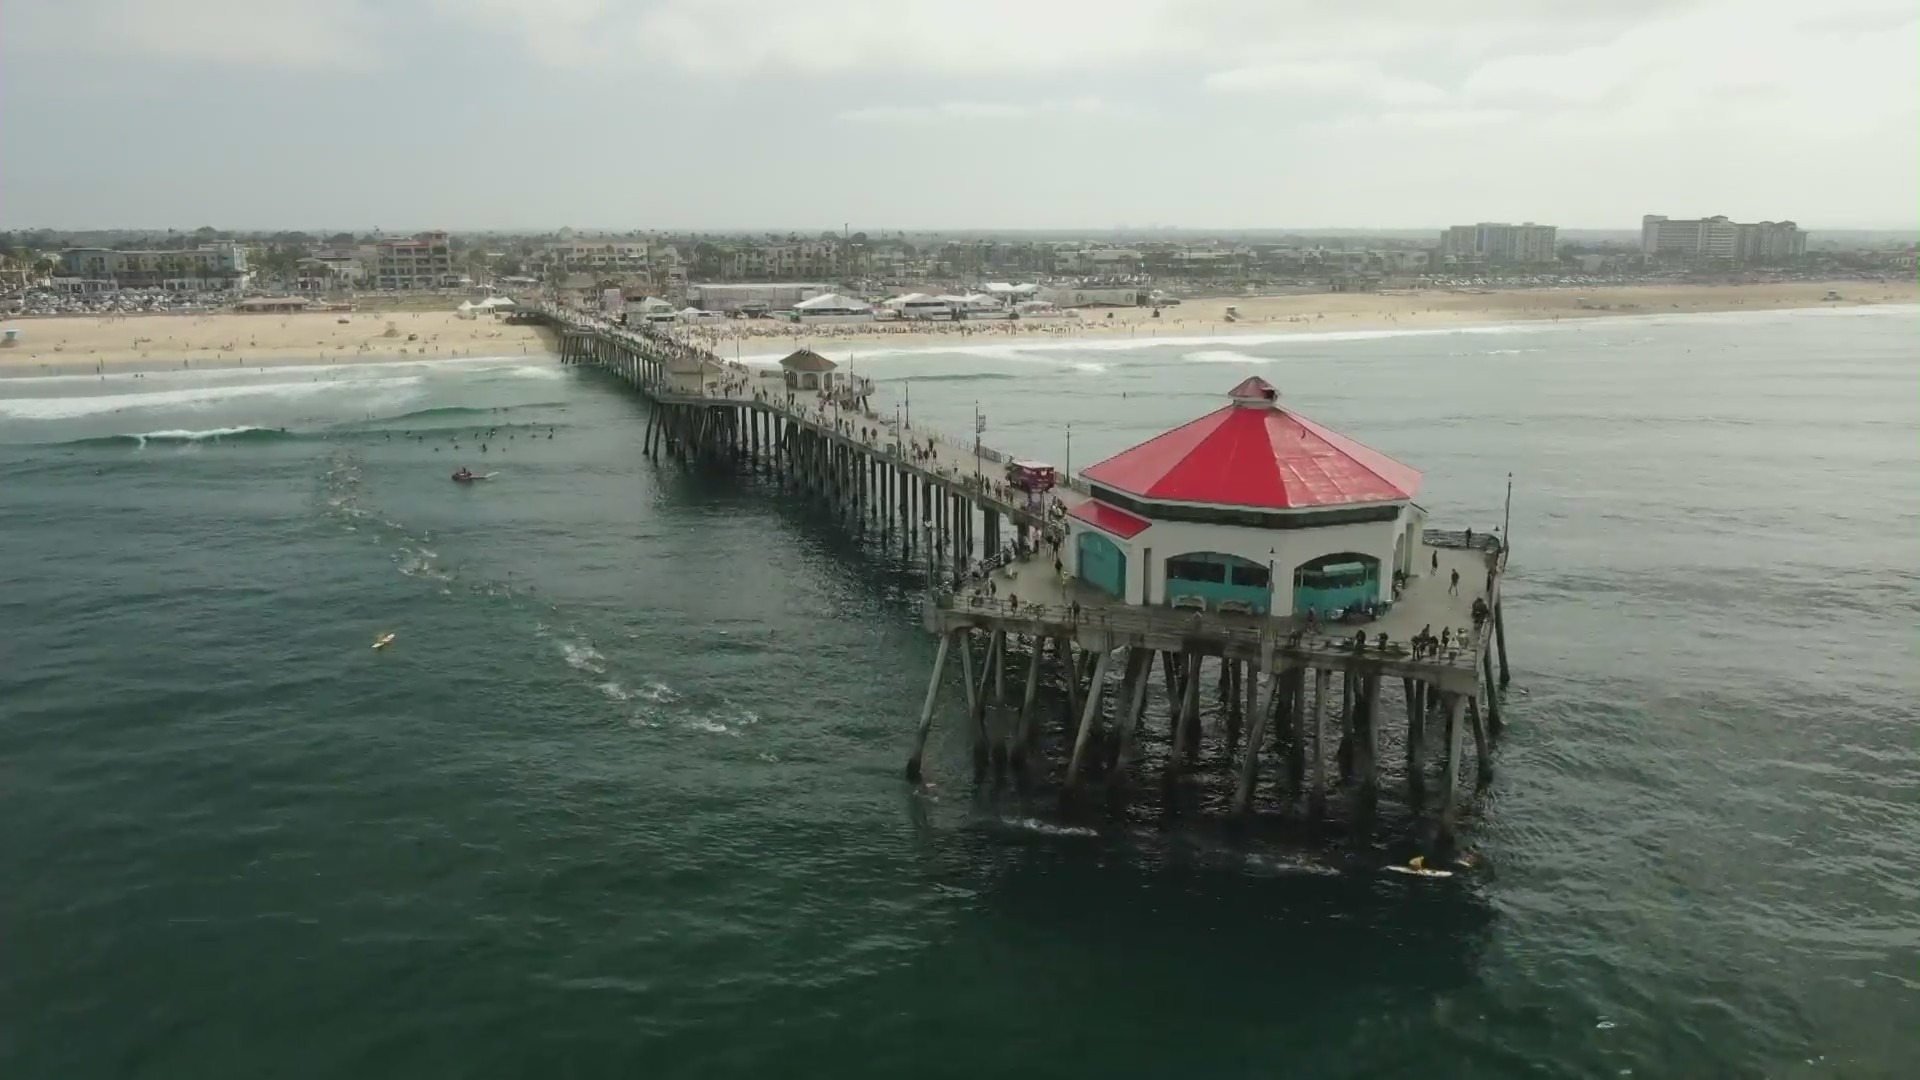 Ruby's Diner on the Huntington Beach Pier is seen in this file image. (KTLA)